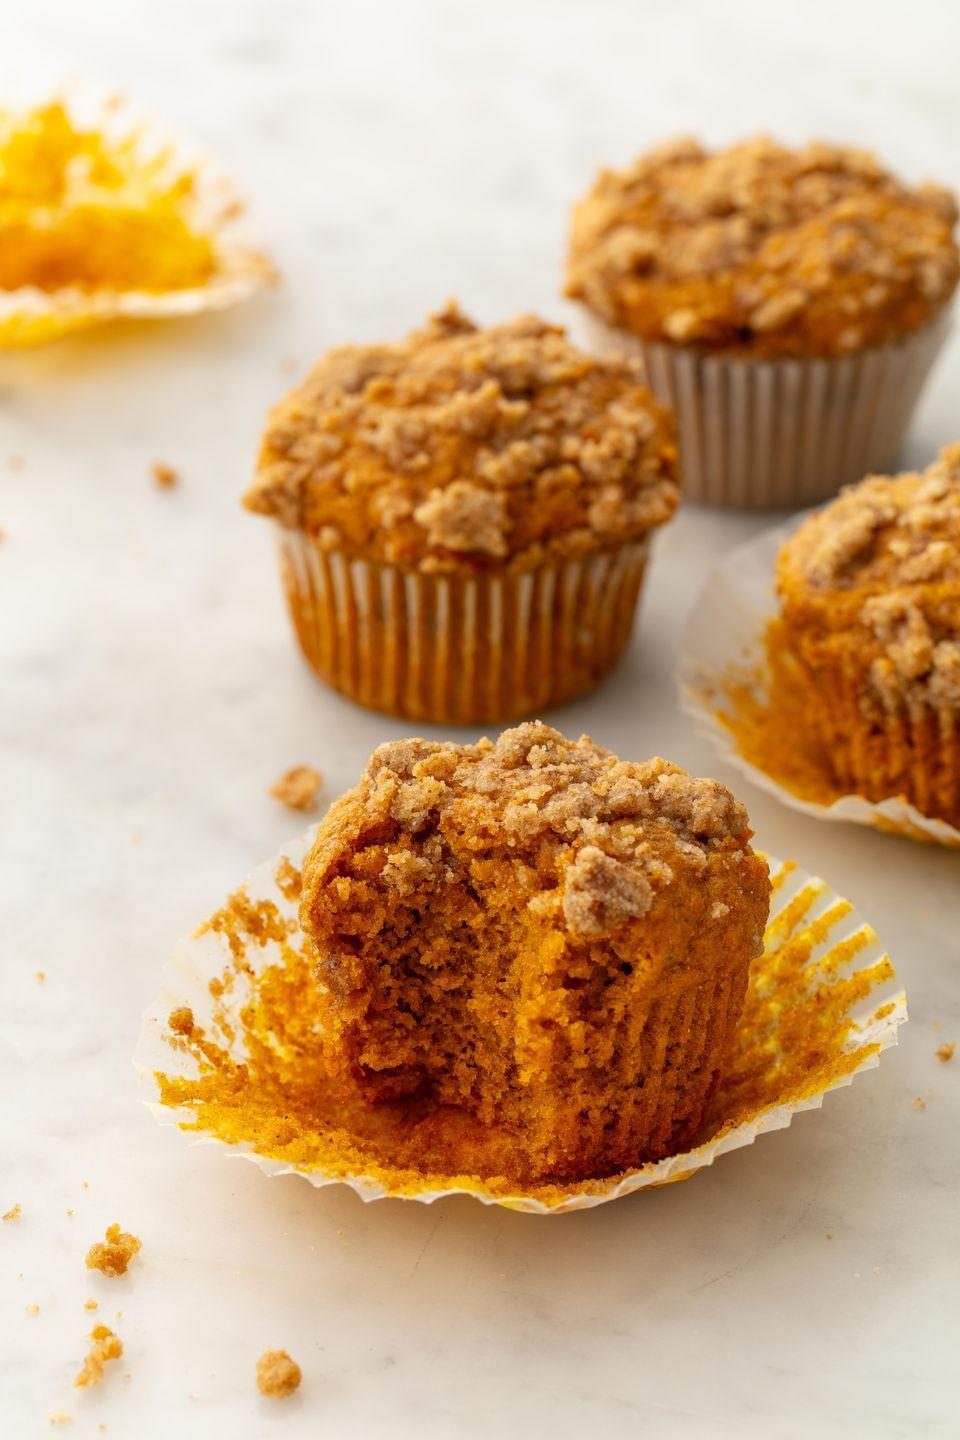 """<p>Streusel topping is peak fall.</p><p>Get the recipe from <a href=""""https://www.delish.com/cooking/recipe-ideas/a21960637/pumpkin-spice-muffins/"""" rel=""""nofollow noopener"""" target=""""_blank"""" data-ylk=""""slk:Delish"""" class=""""link rapid-noclick-resp"""">Delish</a>.</p>"""